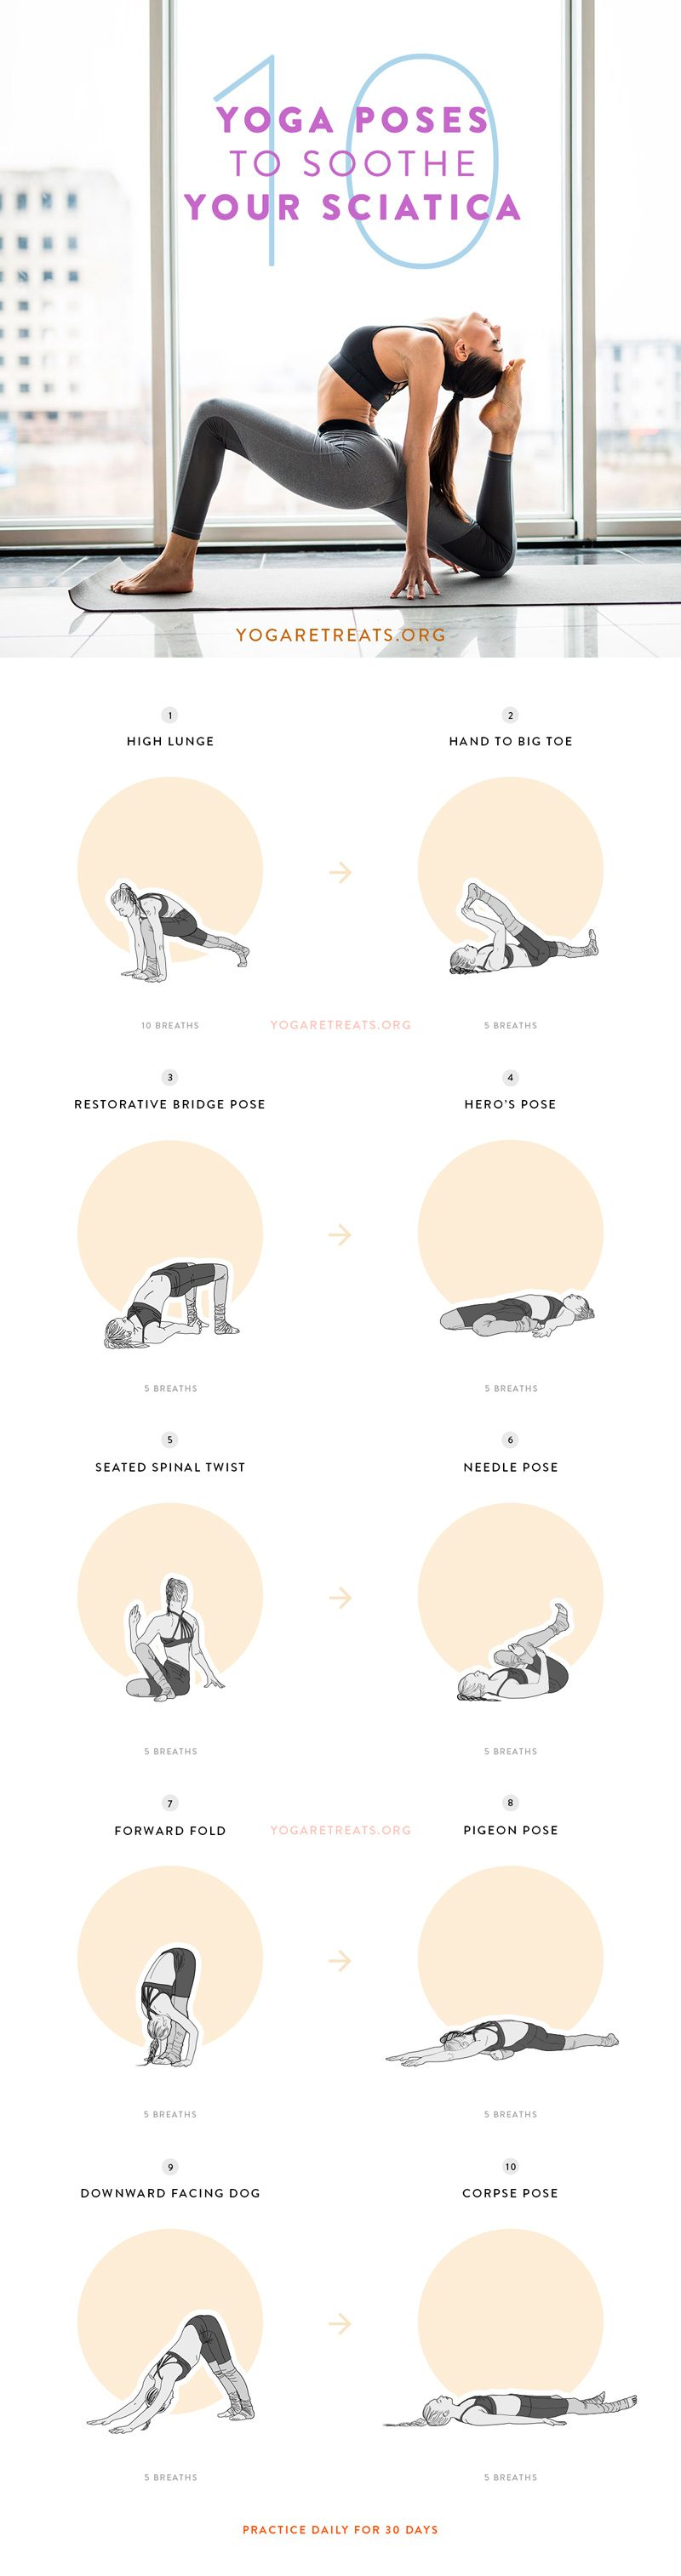 10 Yoga Poses to Soothe Your Sciatica